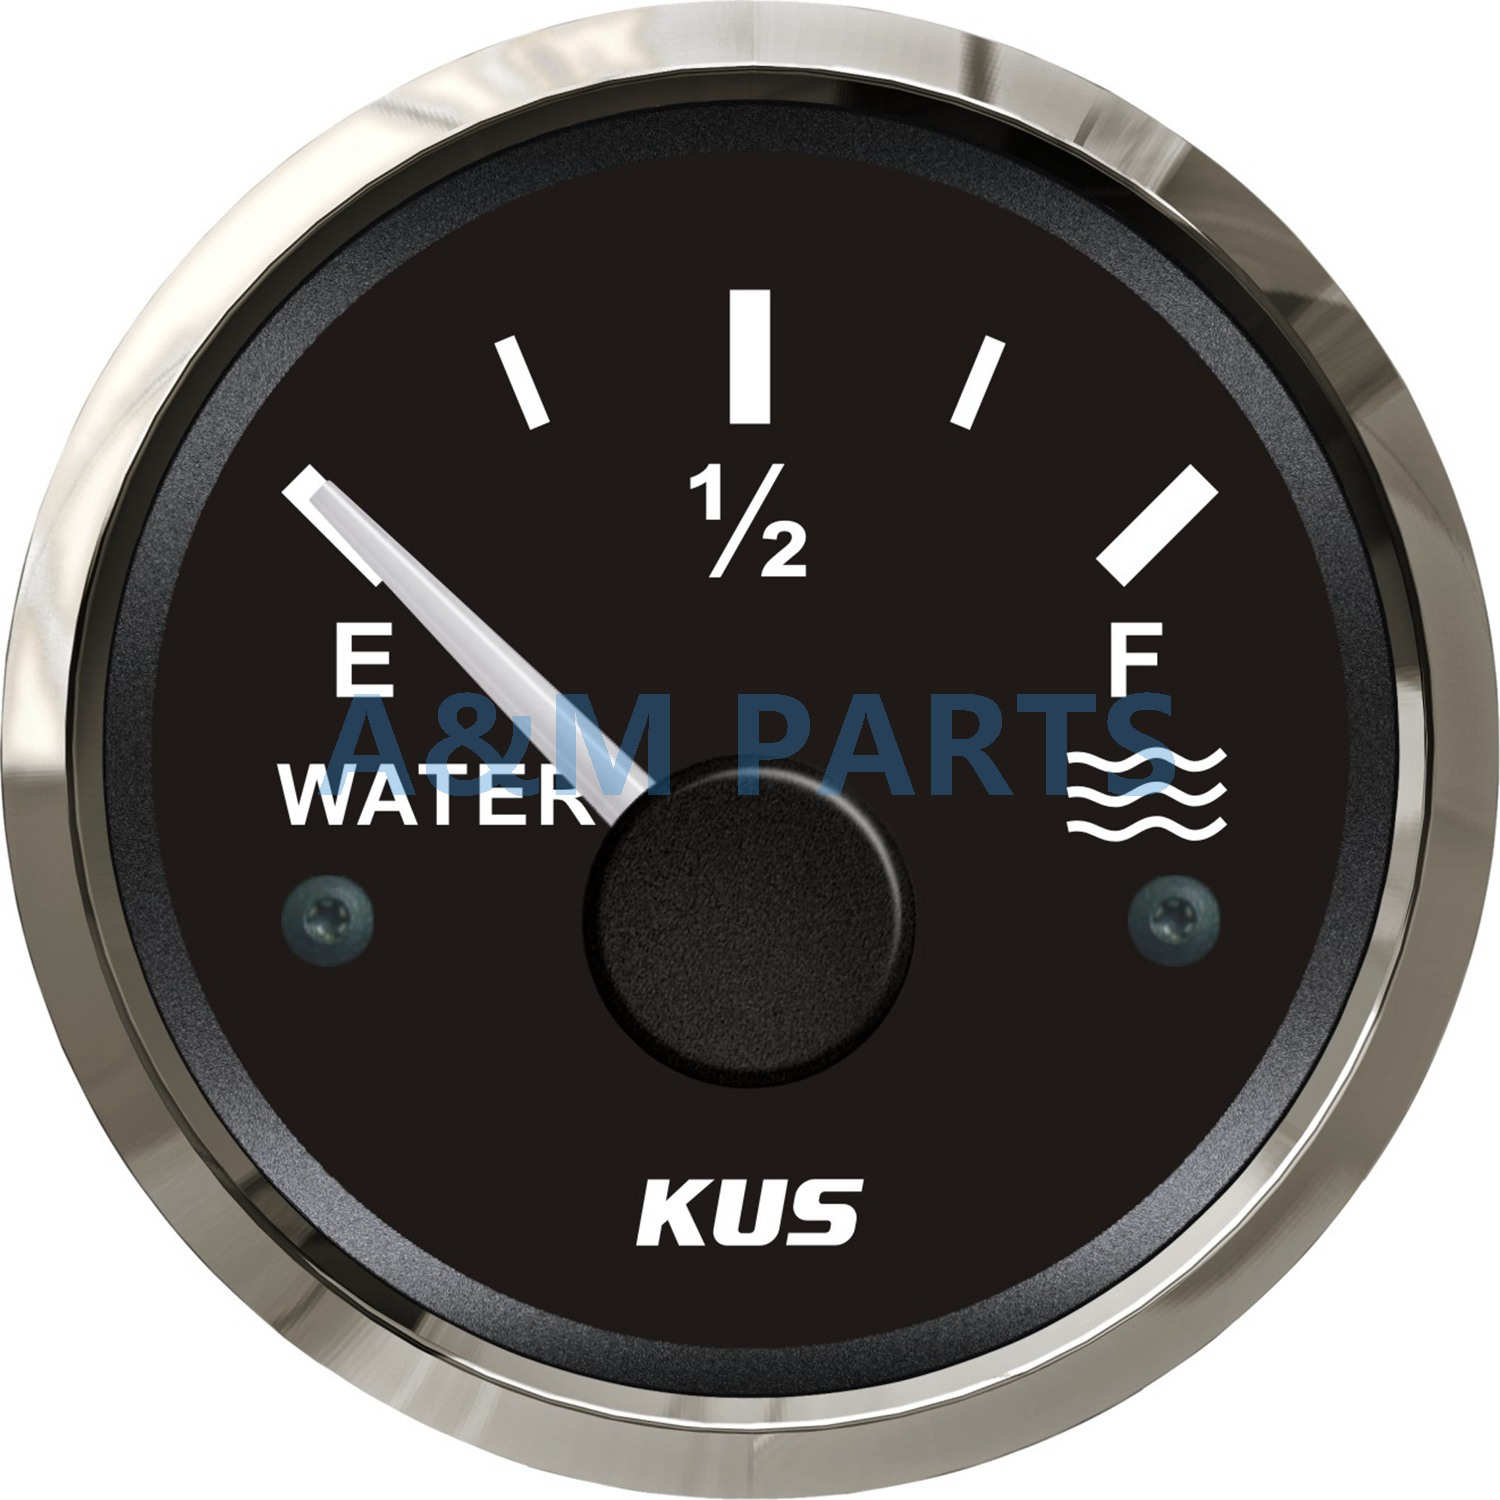 Kus Marine Water Level Gauge Boat Water Tank Level Gauge Indicator Empty Full Red/yellow Led 12/24v 52mm 240-33 Ohms Preventing Hairs From Graying And Helpful To Retain Complexion